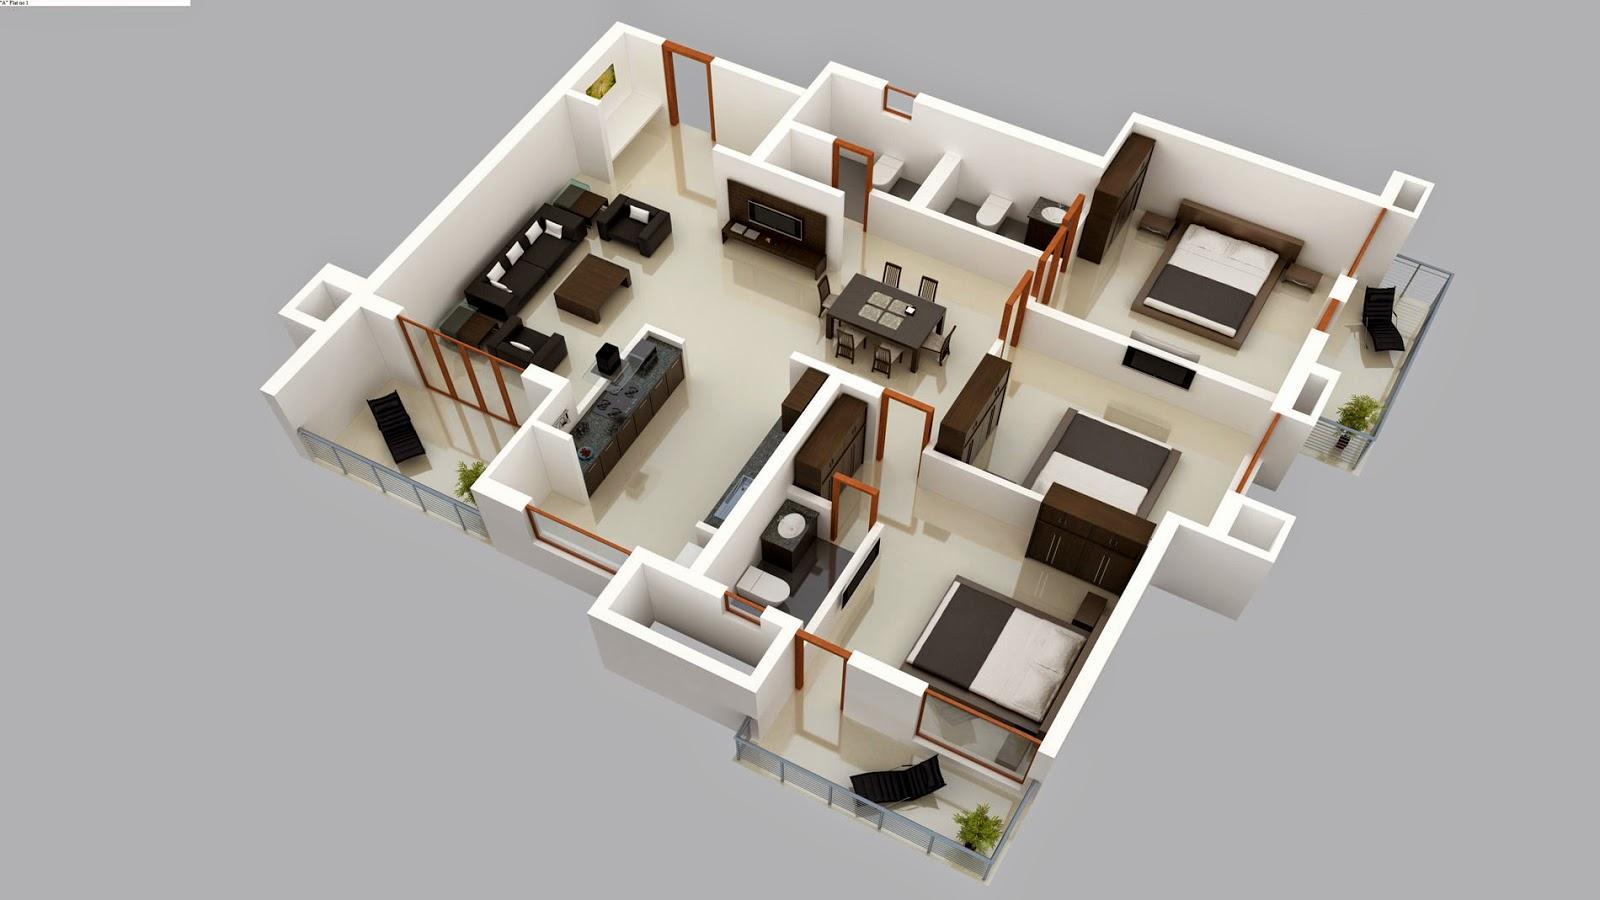 AutoCAD Drawings Of Building Plans/designs (2D U0026 3D), Architectural Designs,  Rendering, Engineering Designs, Structural Design/detailing, Project  Management ...